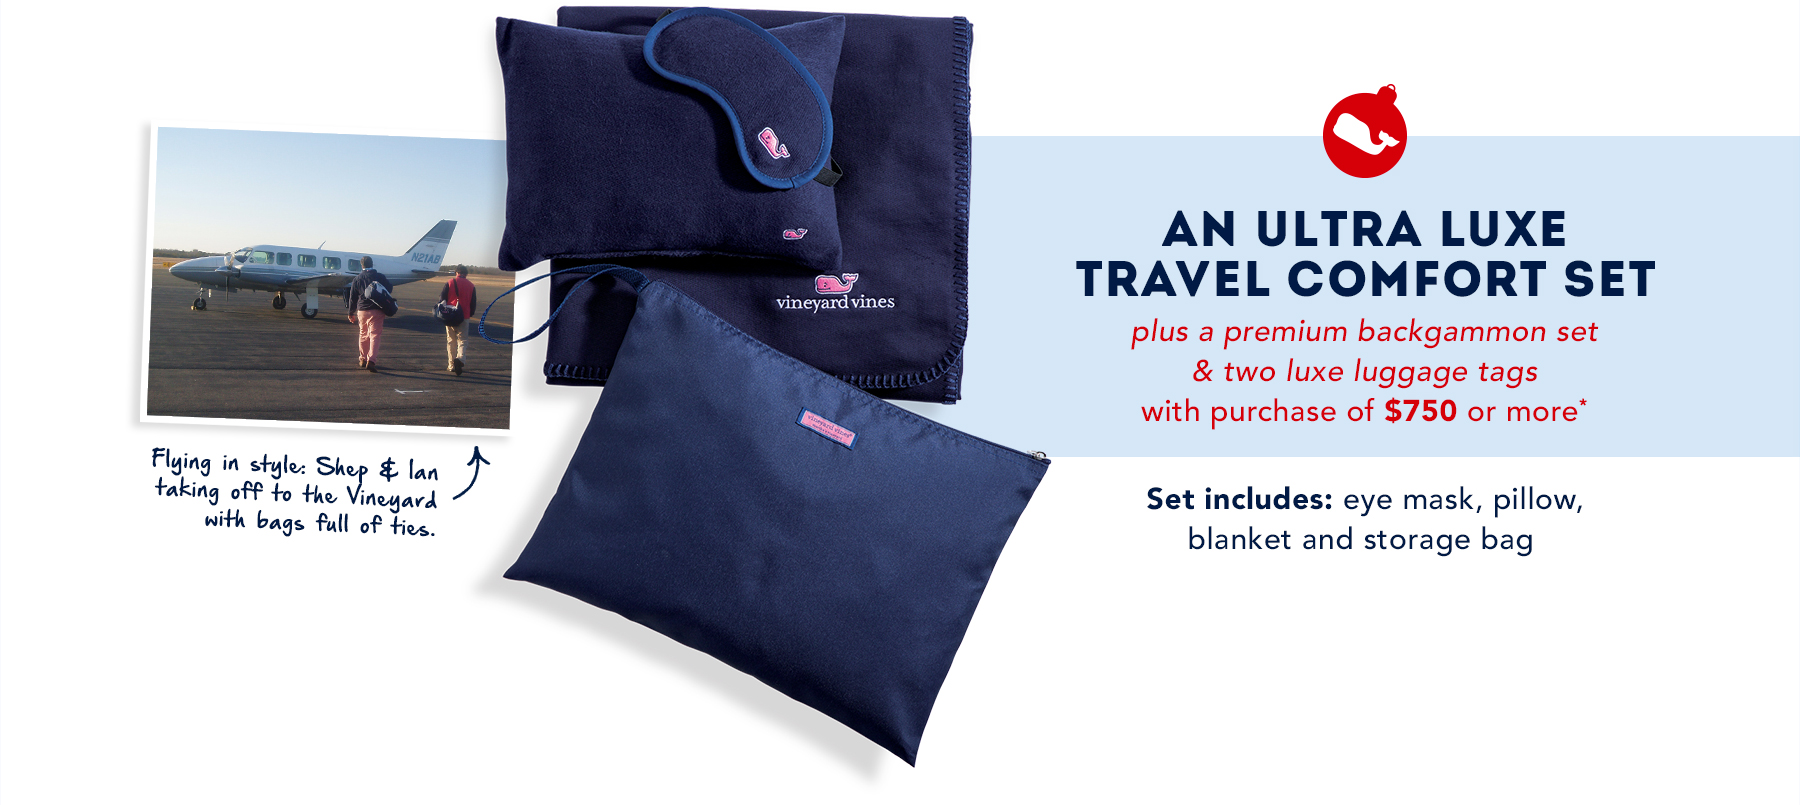 A ultra lux travel comfort set plus a premium backgammon set & two luxe luggage tags with a purcase of $750 or more. Set includes: eye mask, pillow, blanket and storage bag.